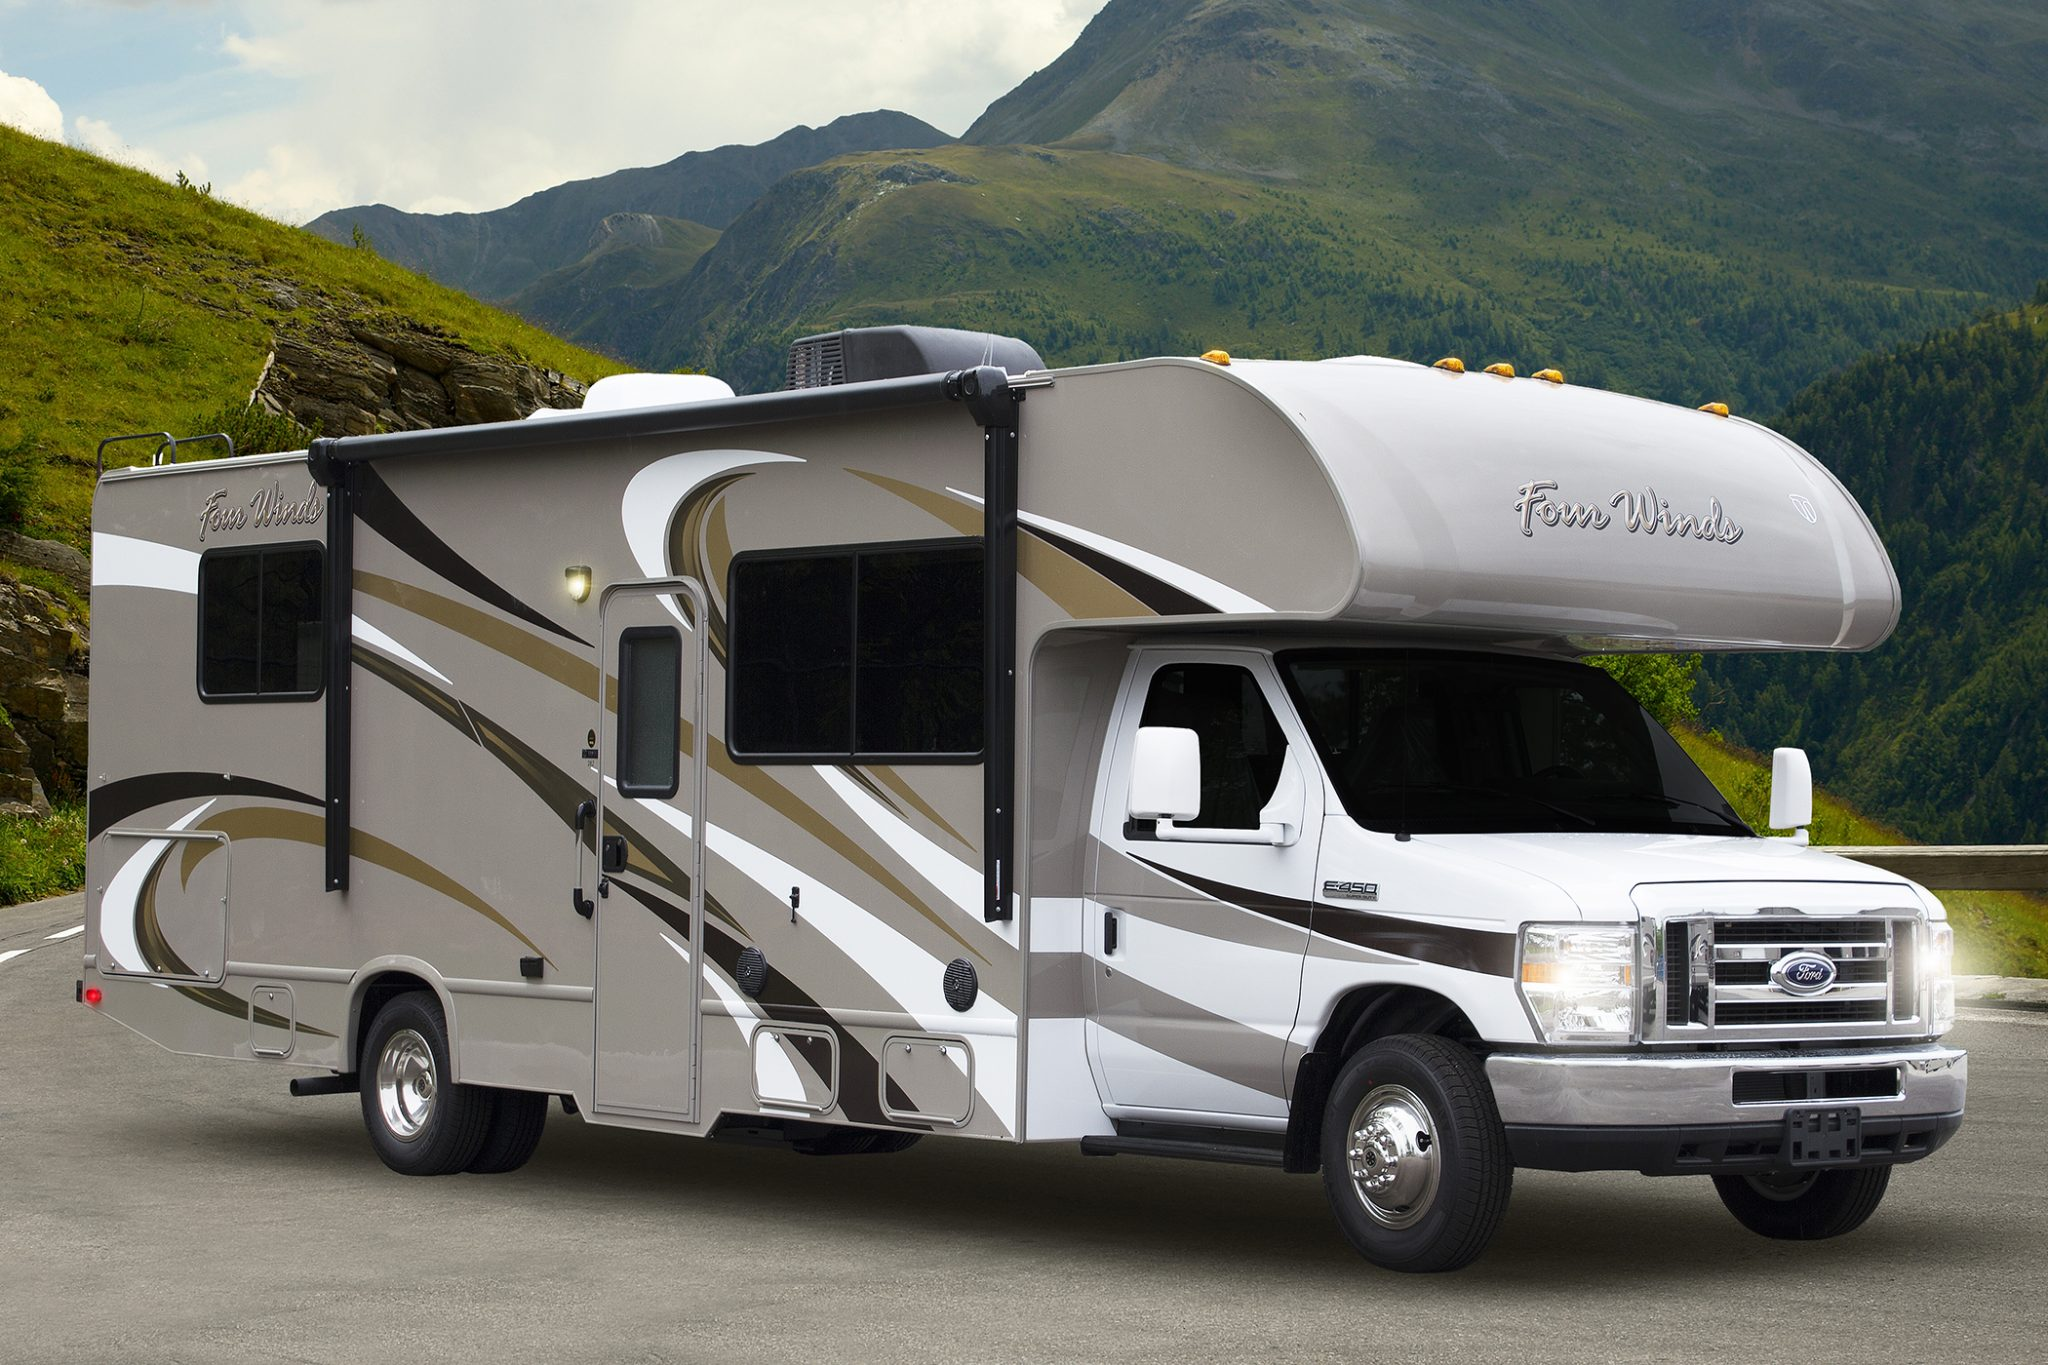 Ford Motorhome Chassis Sales Growth Outpacing Industry ...